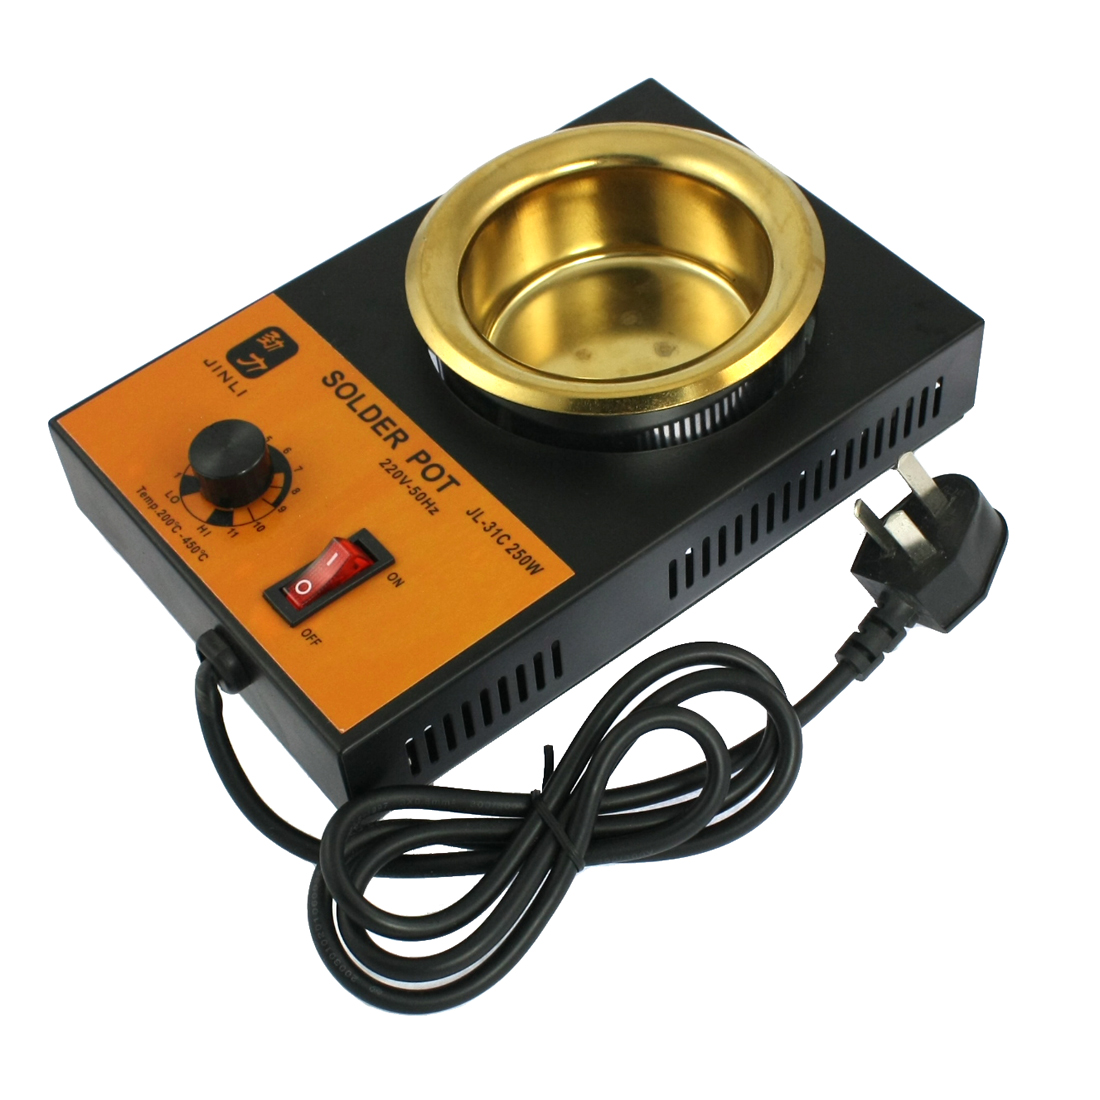 Temperature Controlled Lead Free Solder Pot Soldering Desoldering Bath 80mm AC 220V 250W AU Plug